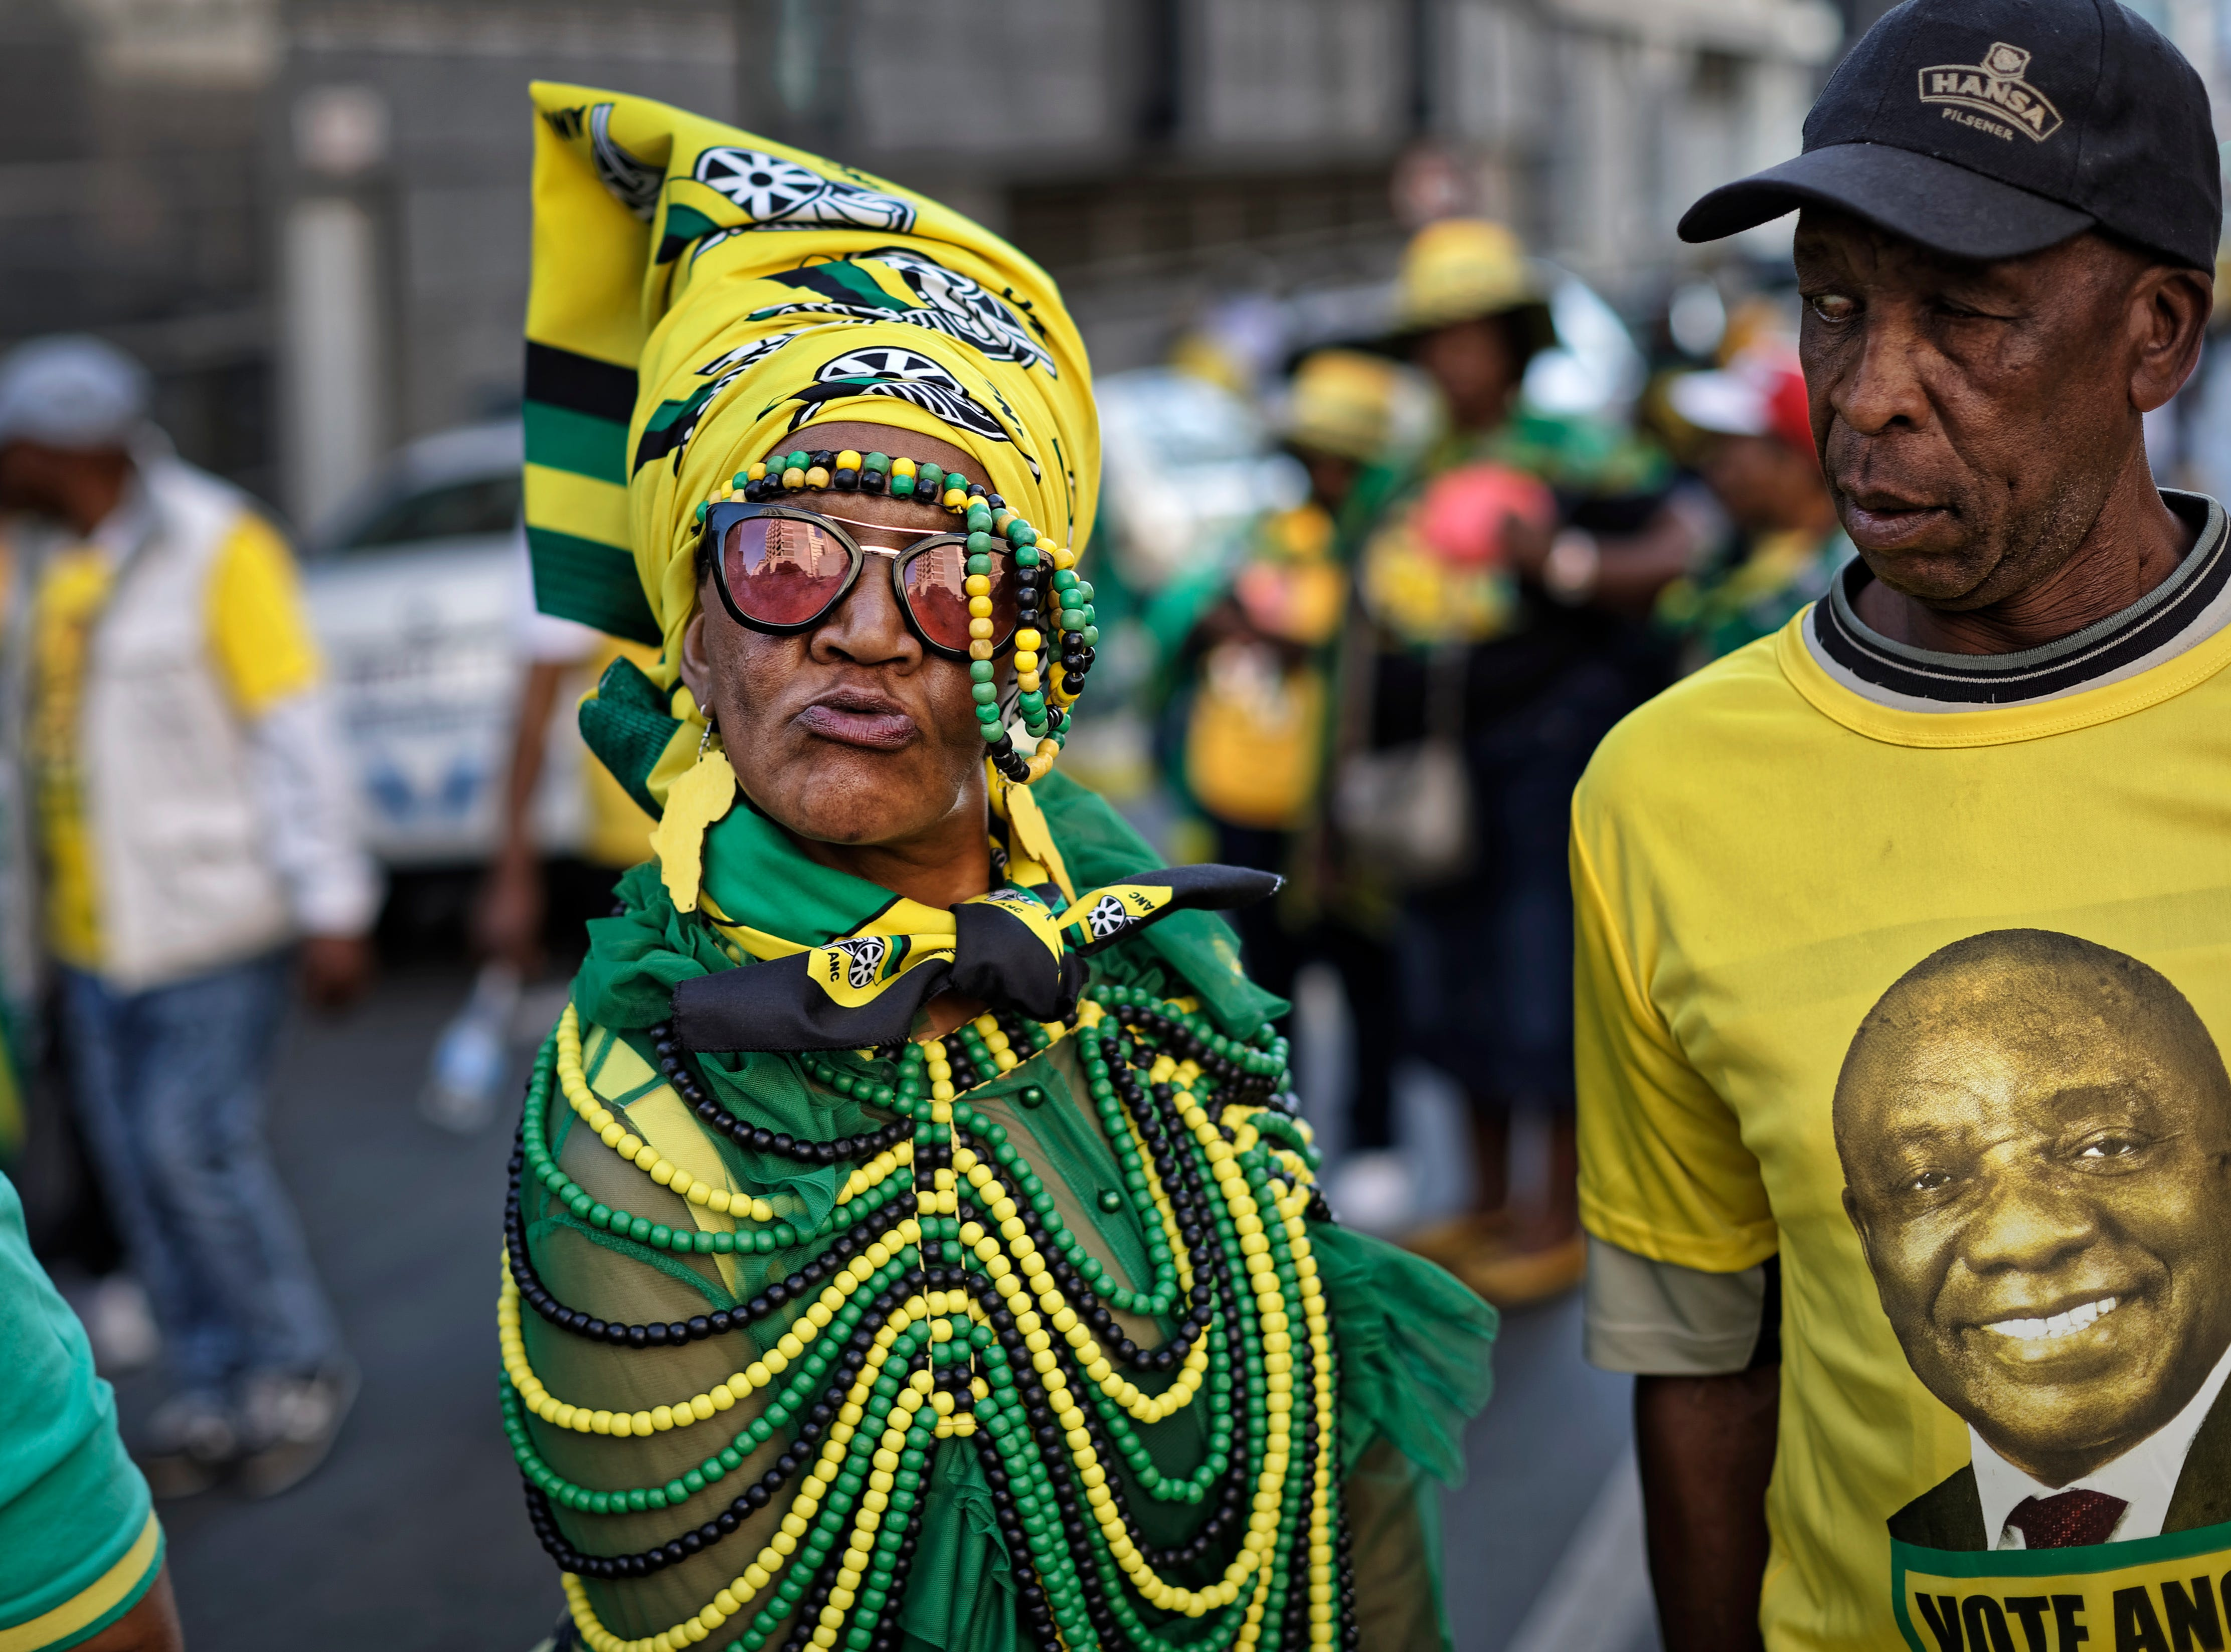 """A supporter of the African National Congress (ANC) party wears beads in the party colors, and another wears a t-shirt of President Cyril Ramaphosa, right, during a victory rally in downtown Johannesburg, South Africa Sunday, May 12, 2019. South Africa's president on Sunday vowed to purge his party of """"bad and deviant tendencies"""" as he prepares to appoint a new Cabinet following a victory in national elections."""